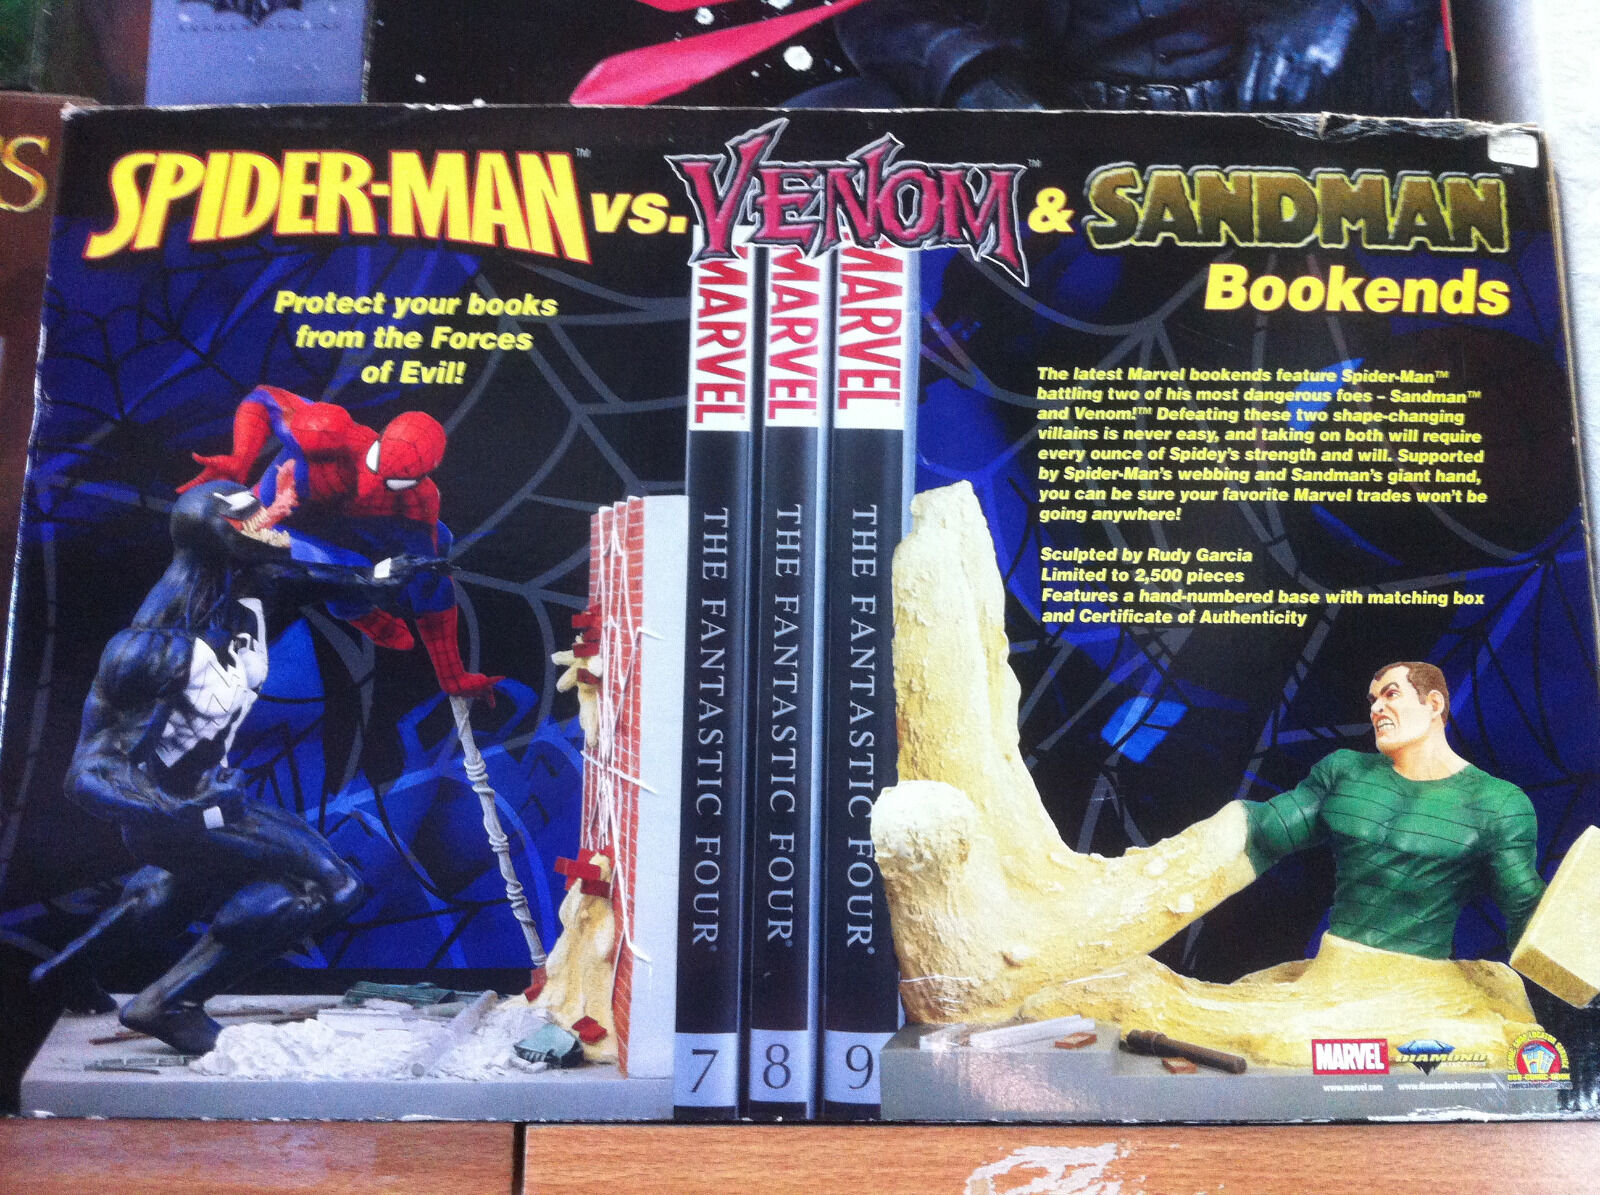 Diamond spiderman vs venom vs sandman bookend